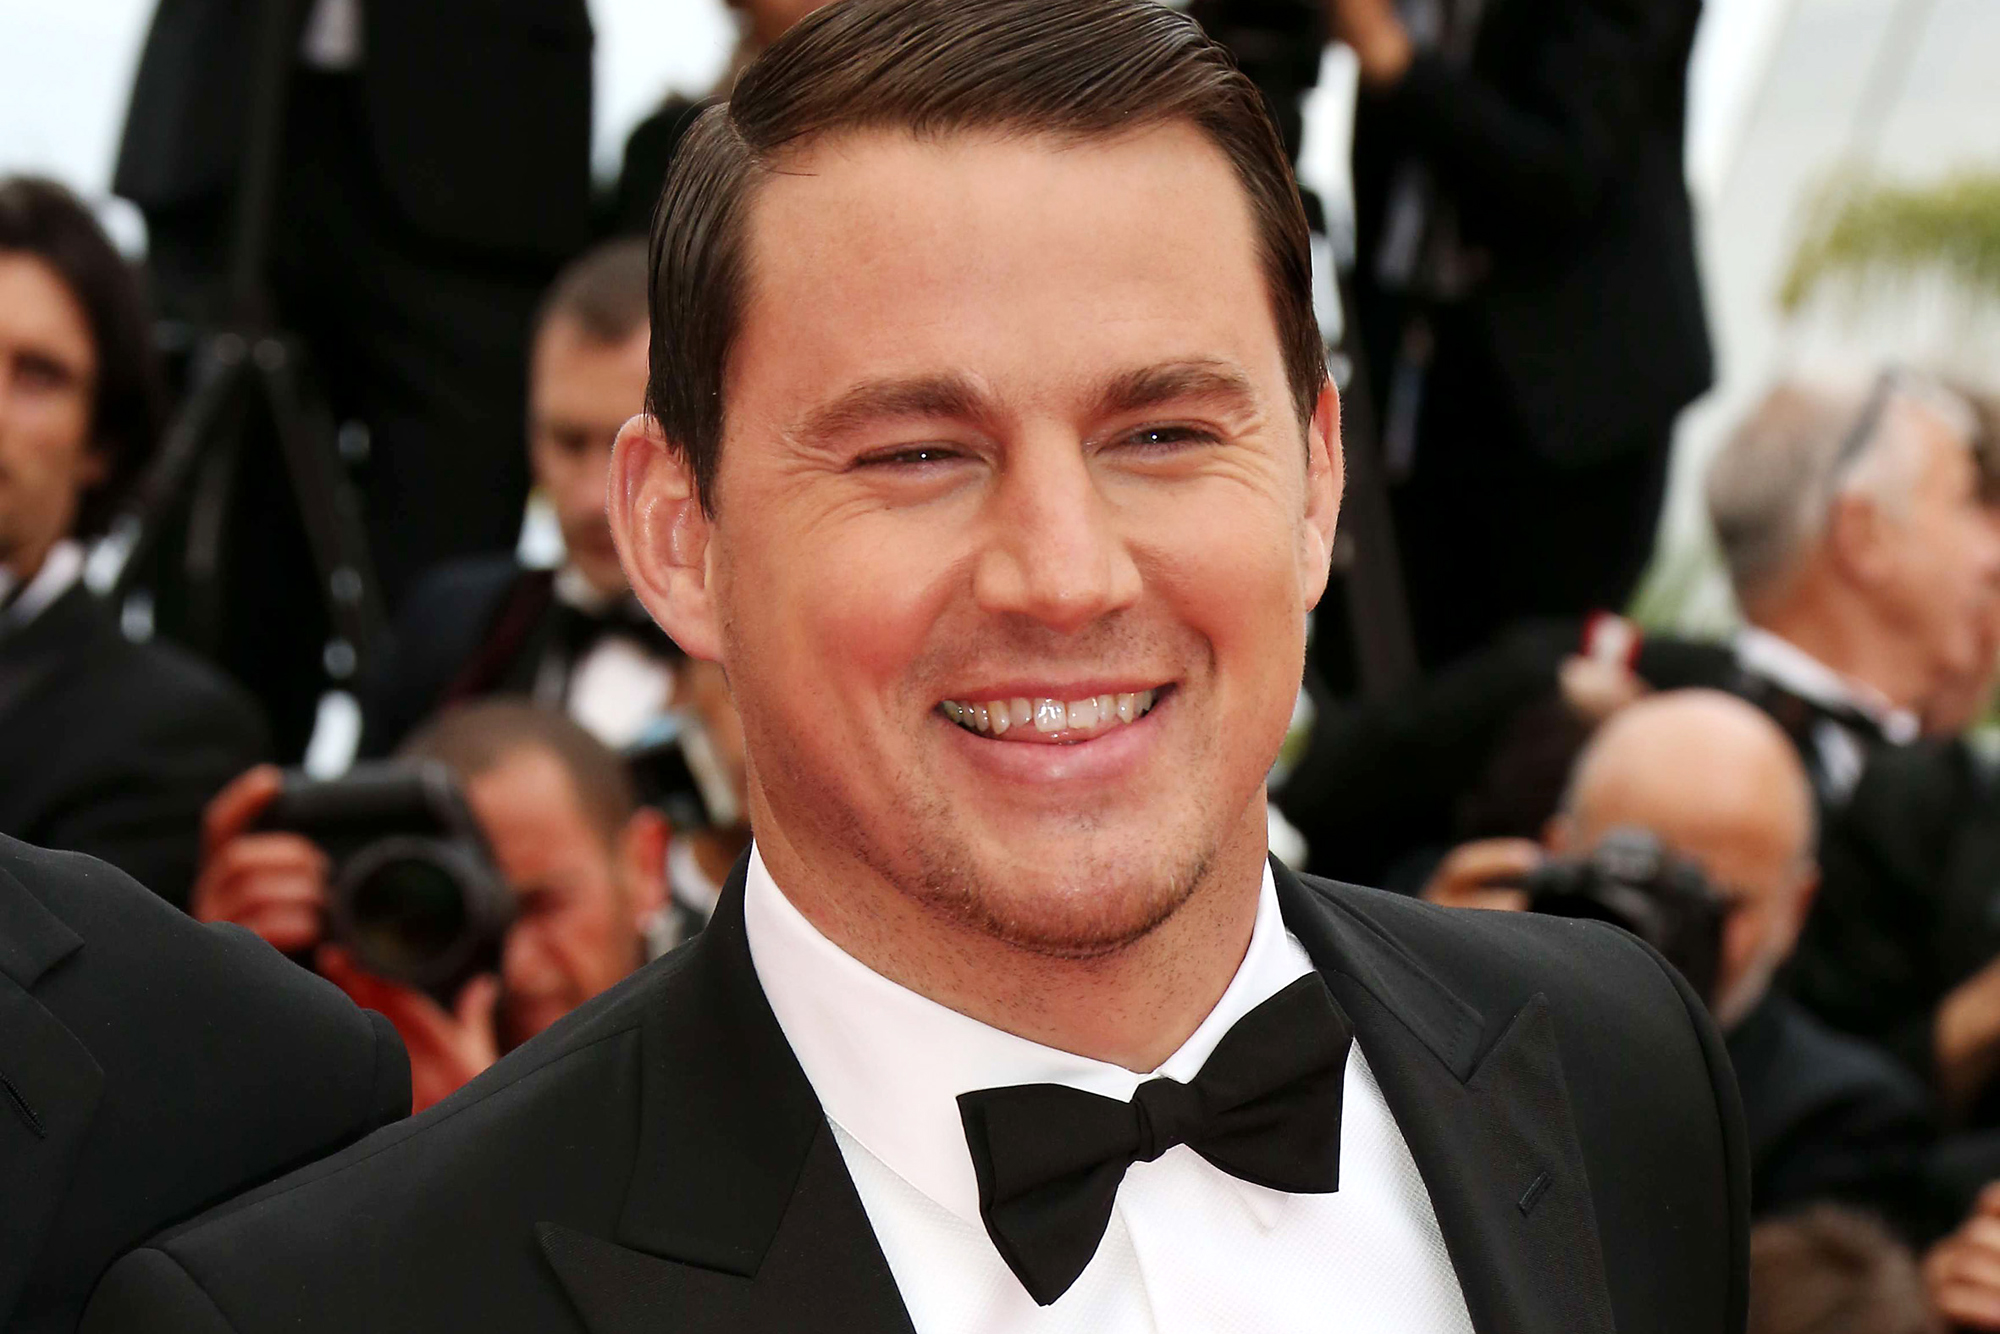 Channing Tatum Announces 'Gambit' Release Date | mxdwn Movies Channing Tatum